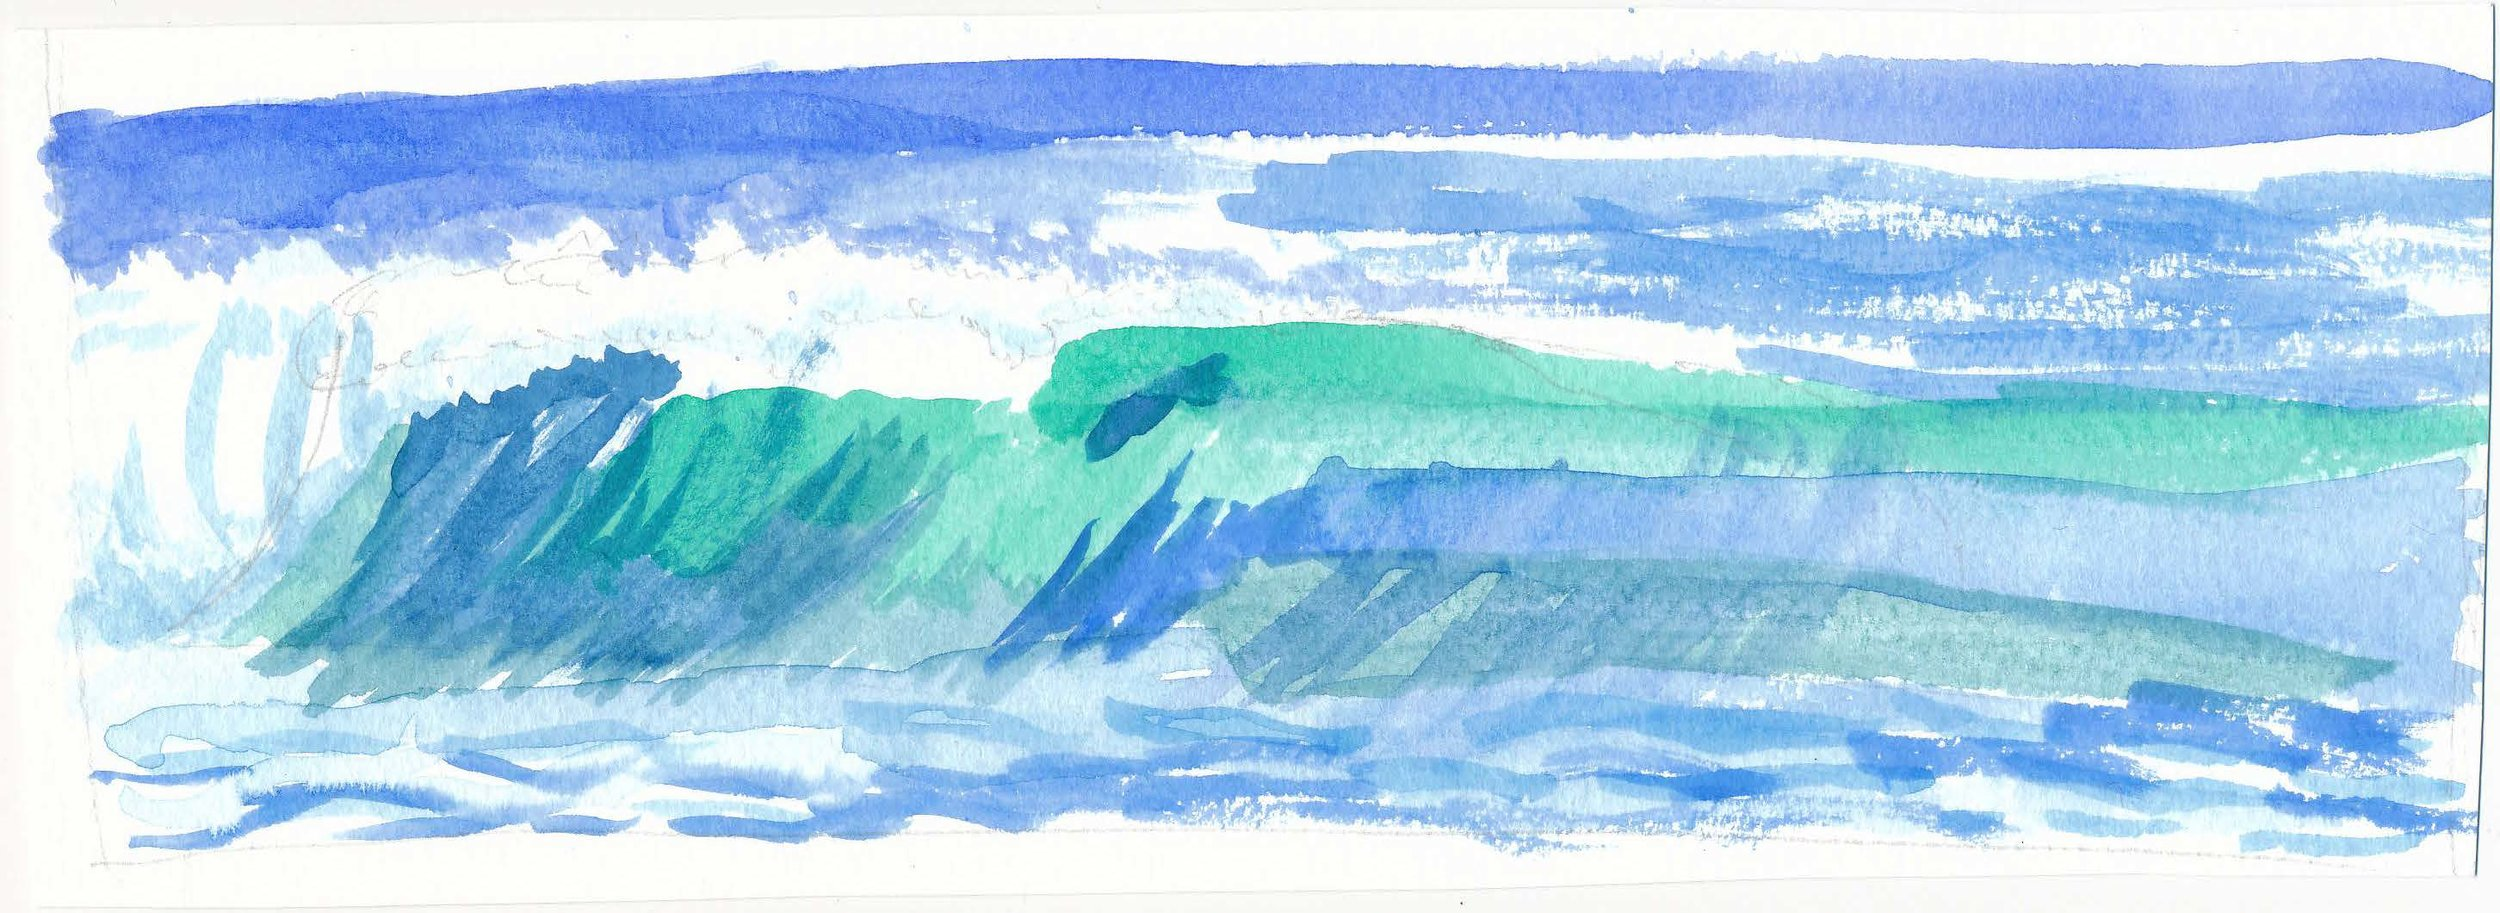 Wave watercolour 1.jpg